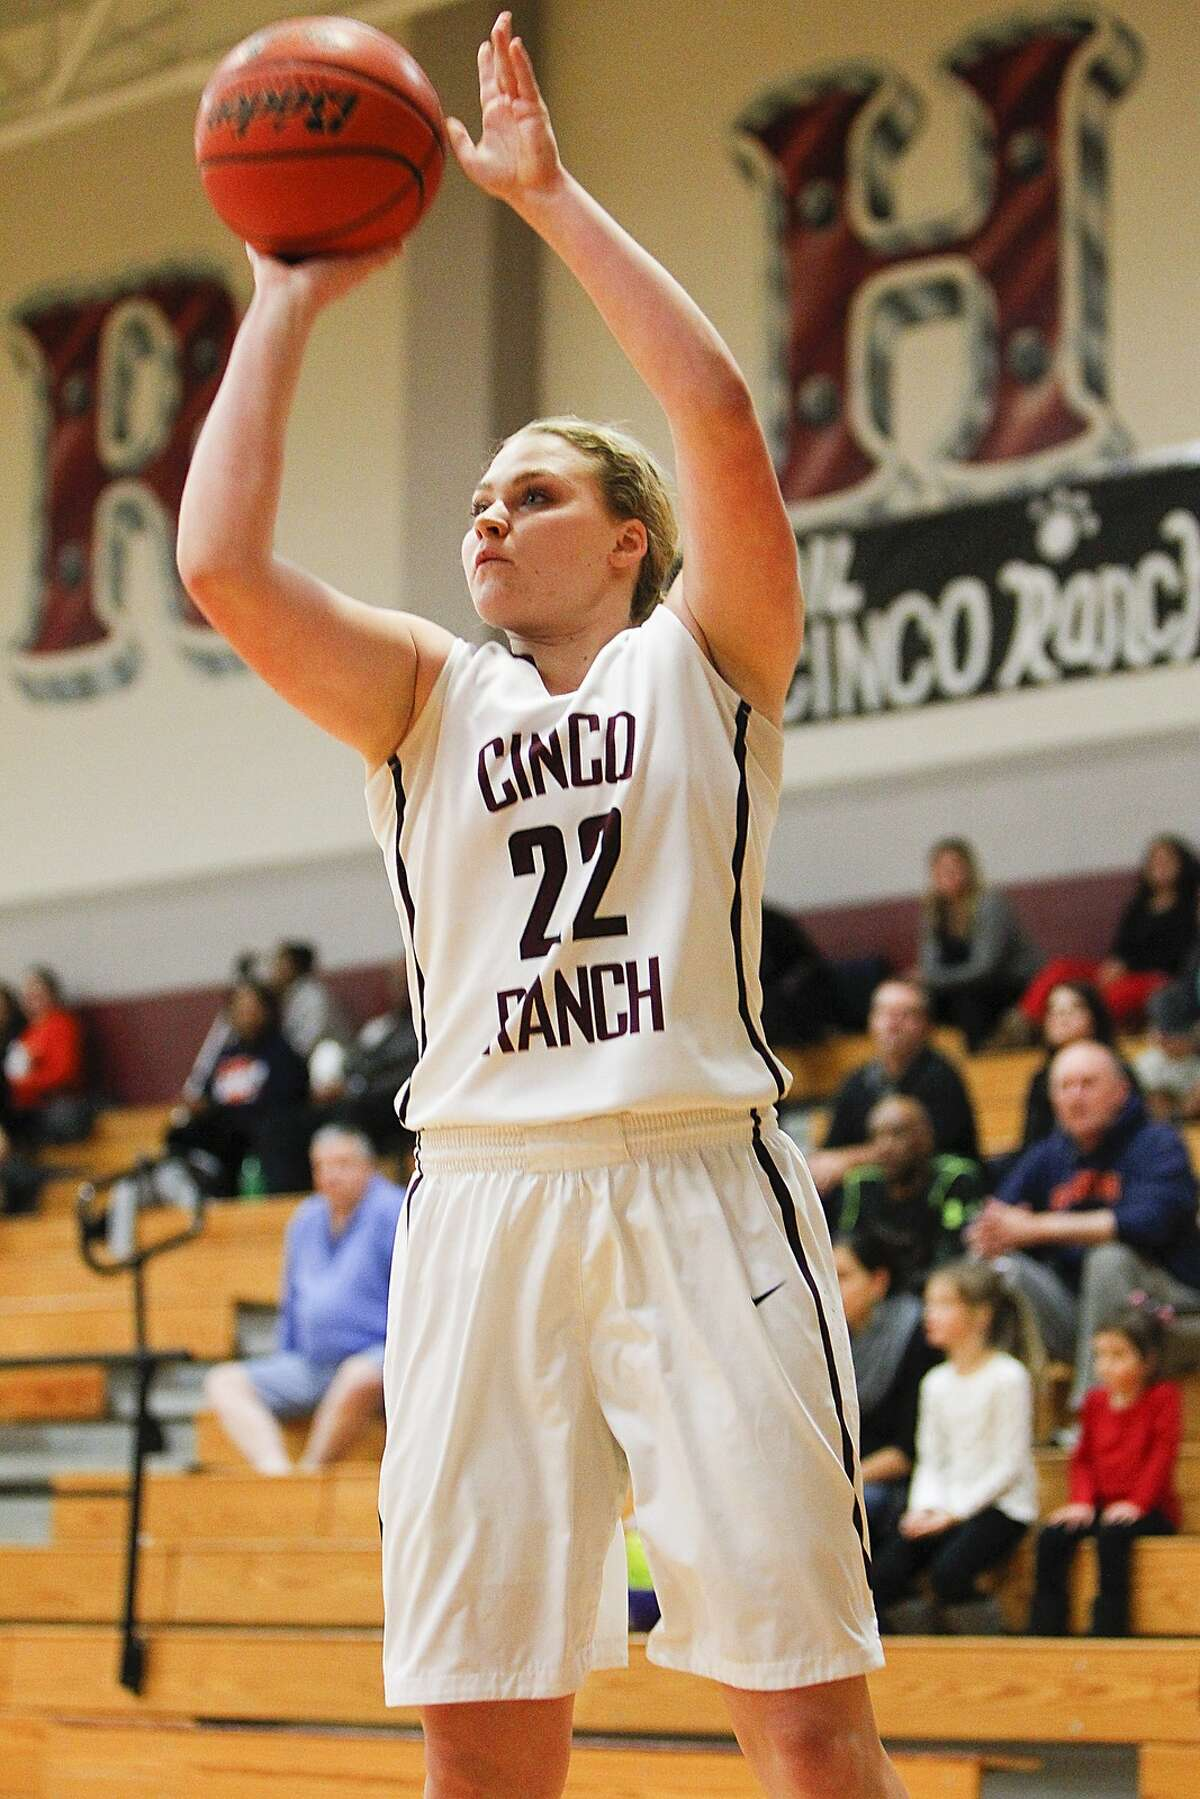 Corin Evans of Cinco Ranch lands a three-pointer during the first period as the Lady Cougars took on Seven Lakes in district play at Cinco Ranch High School in Katy on January 9, 2015.